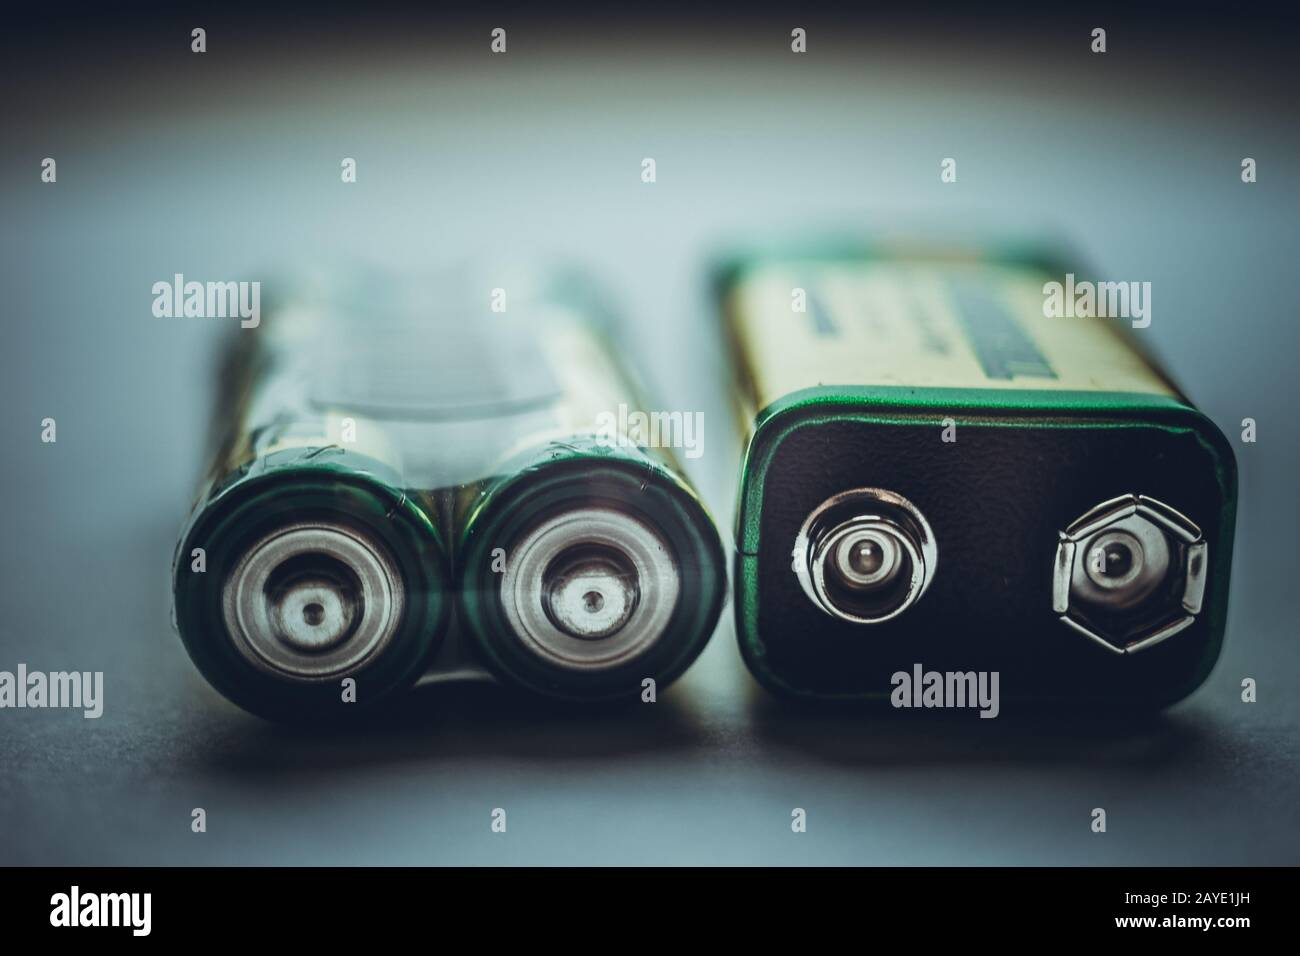 Two different types of batteries on the dark table close-up Stock Photo